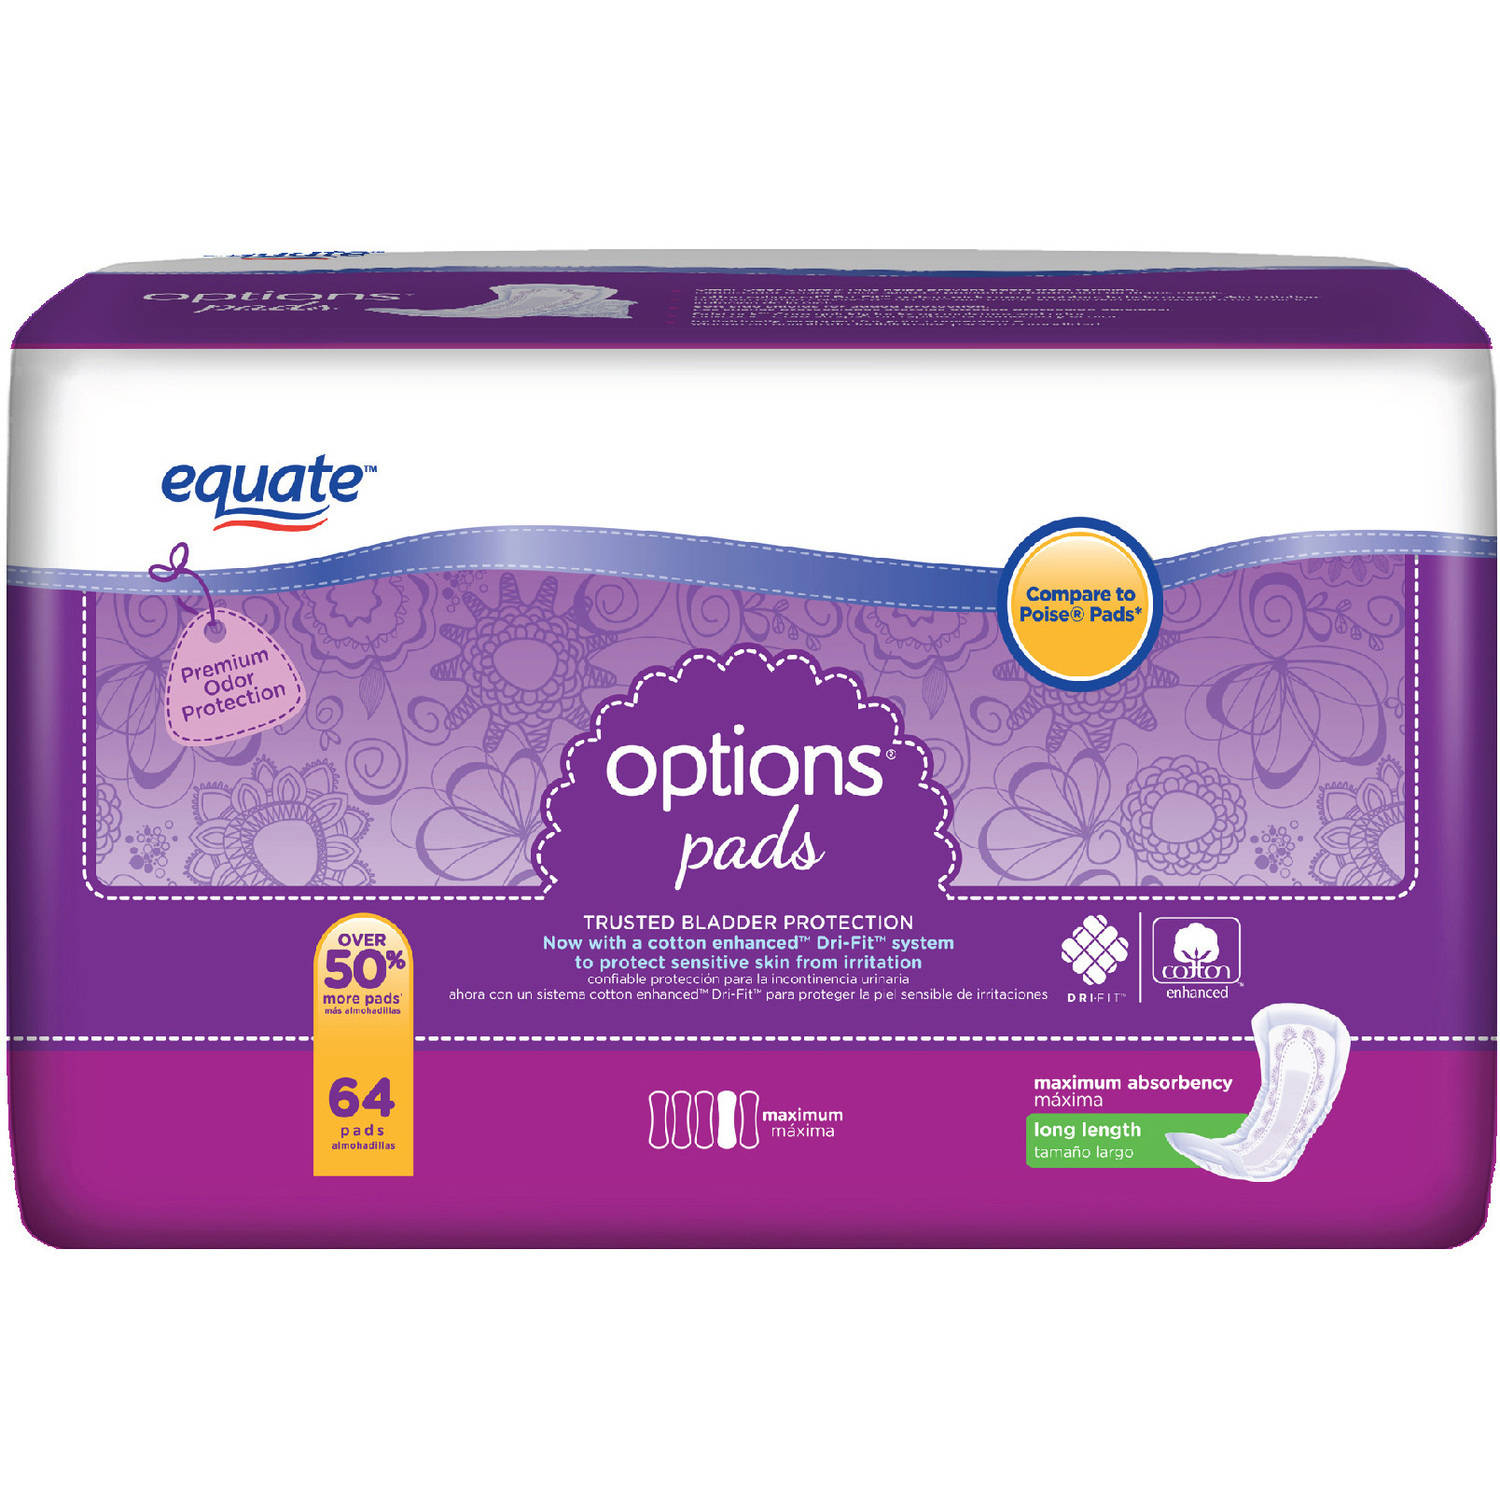 Equate Options Maximum Long Length Incontinence Pads, 64 count